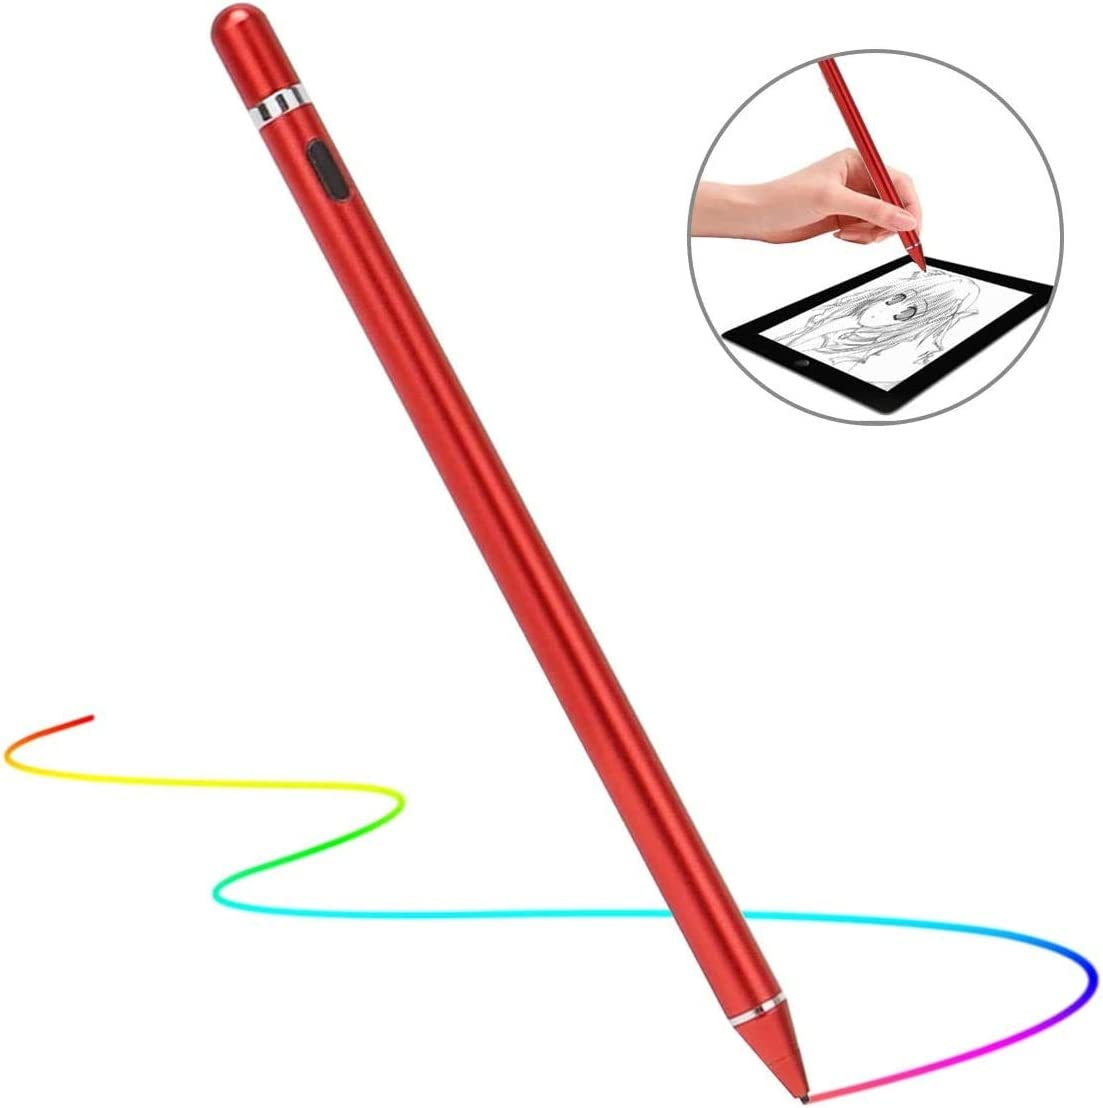 Stylus Pen for Touch Screens, Rechargeable 1.5mm Fine Point Smart Pencil Digital Active Stylus Pen Compatible with iPad and Most Tablet by Mikicat (Red)